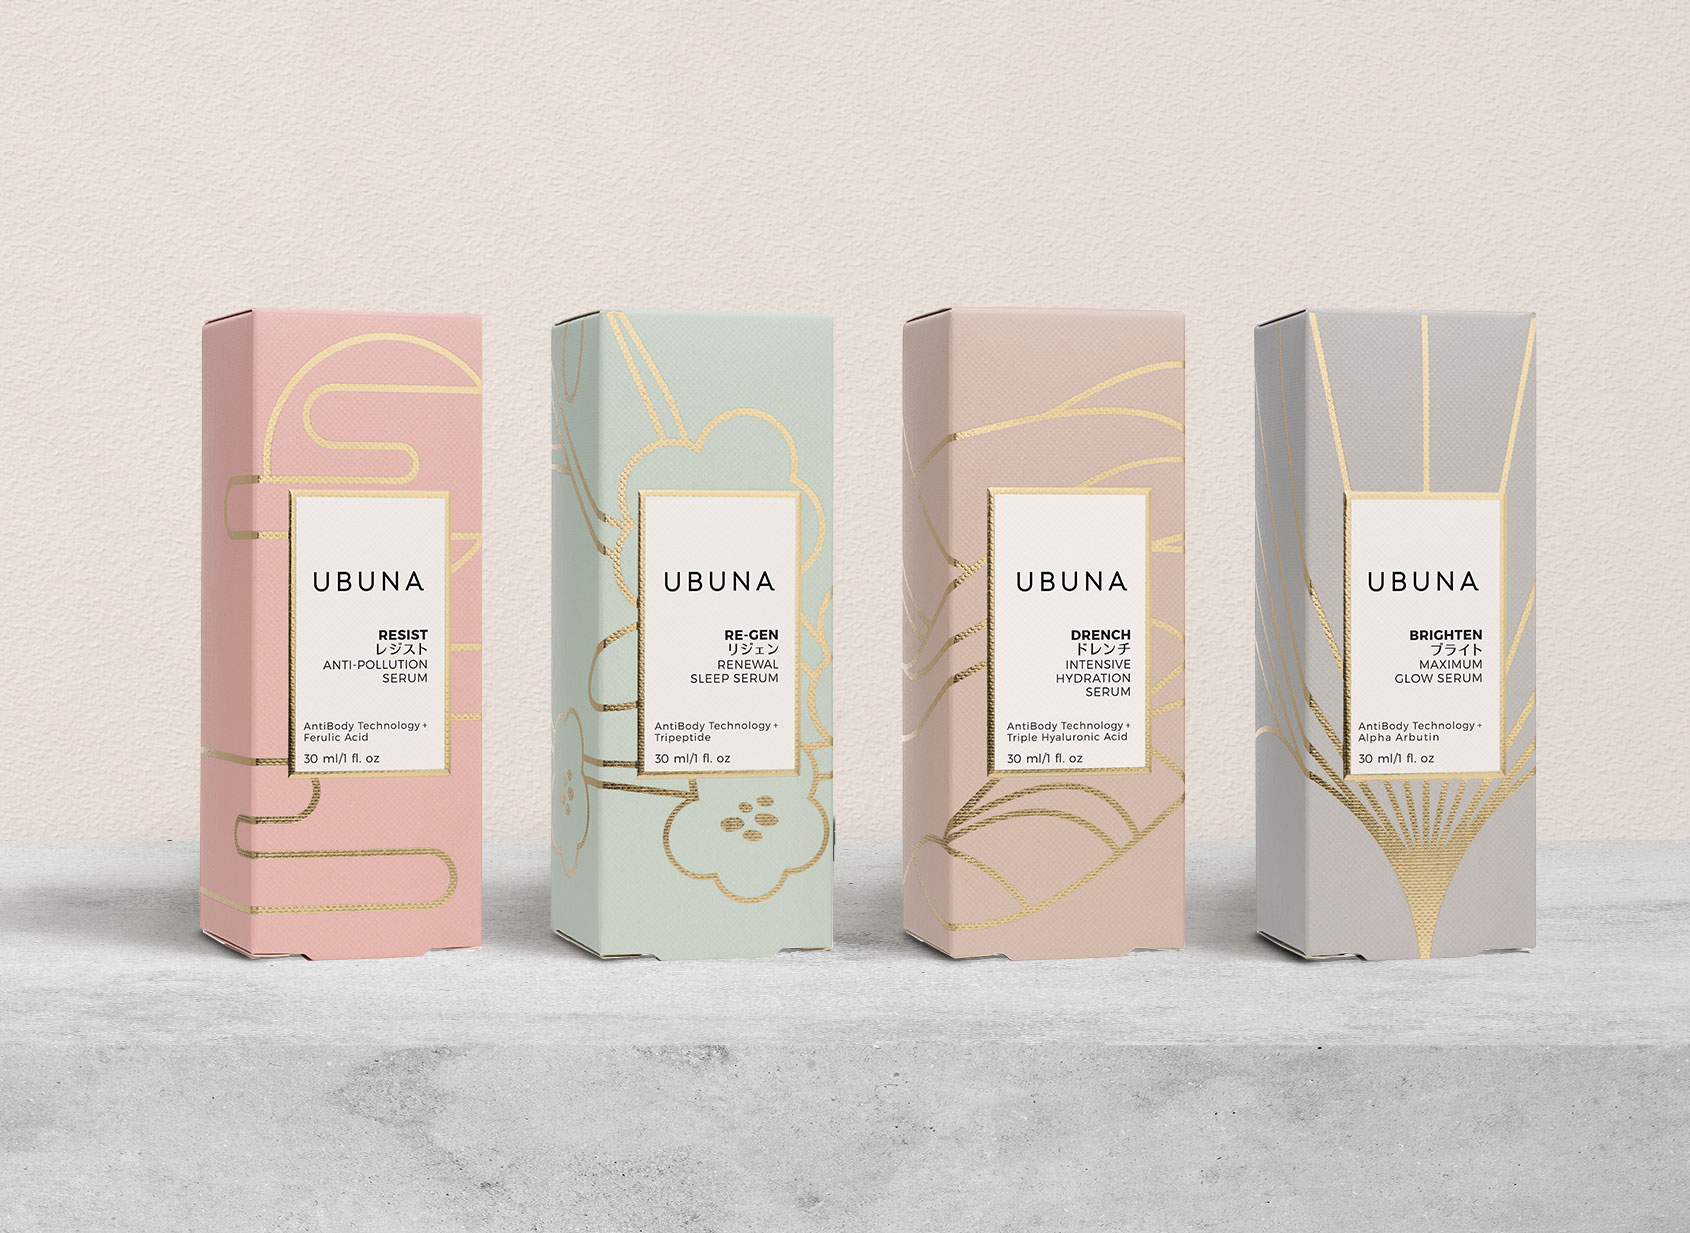 Ubuna Skincare Branding And Packaging Design By Product 360